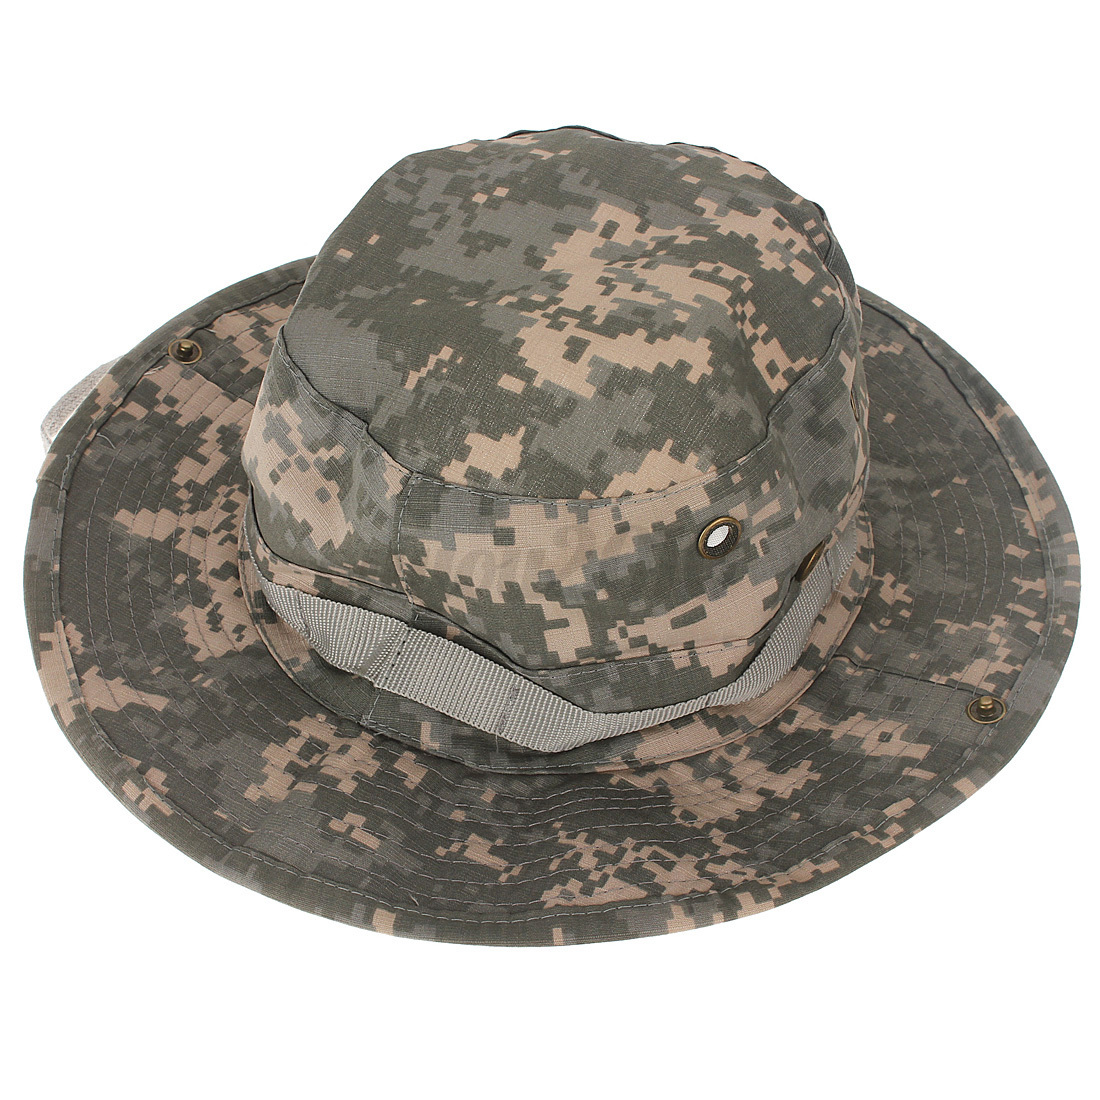 New combat camo hat cap ripstop military army boonie bush for Camo fishing hat